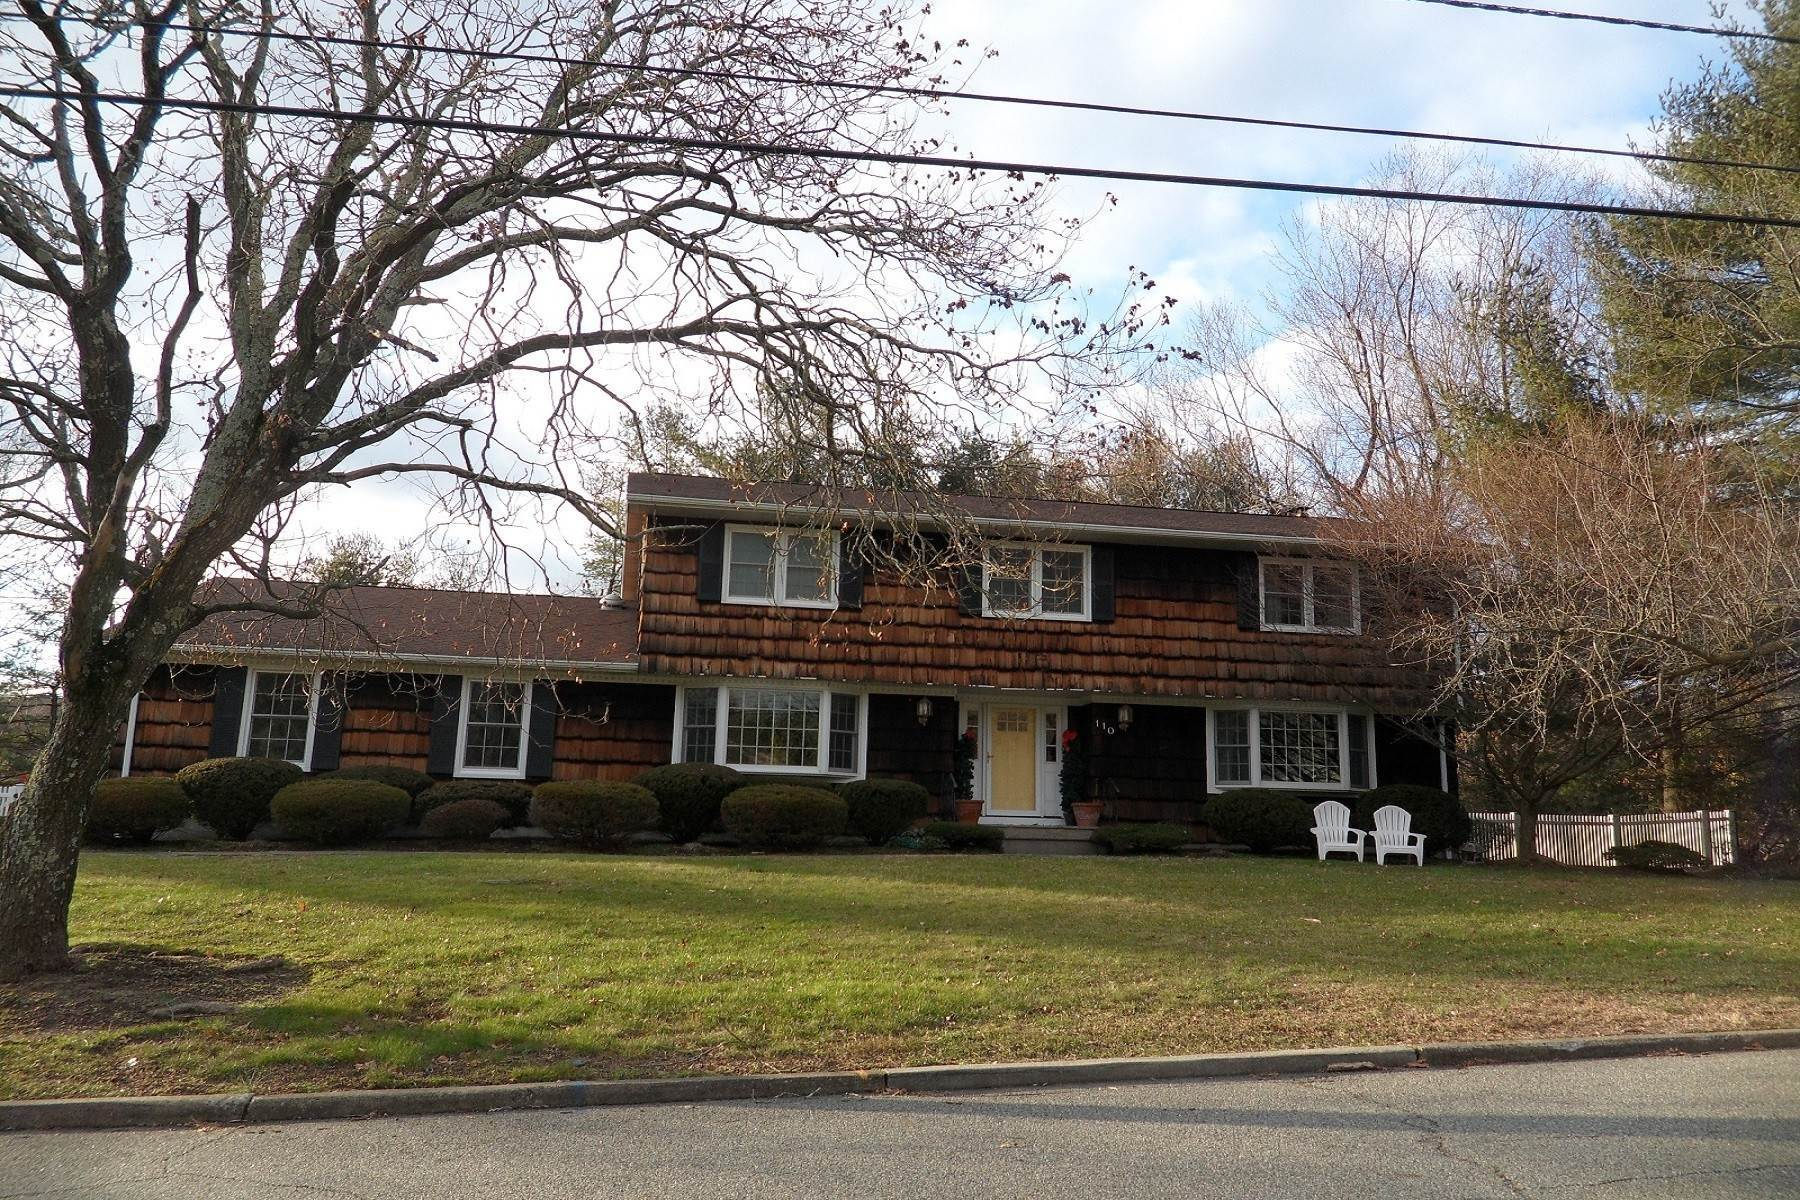 Single Family Homes for Sale at 110 Clairmont Dr Woodcliff Lake, New Jersey 07677 United States